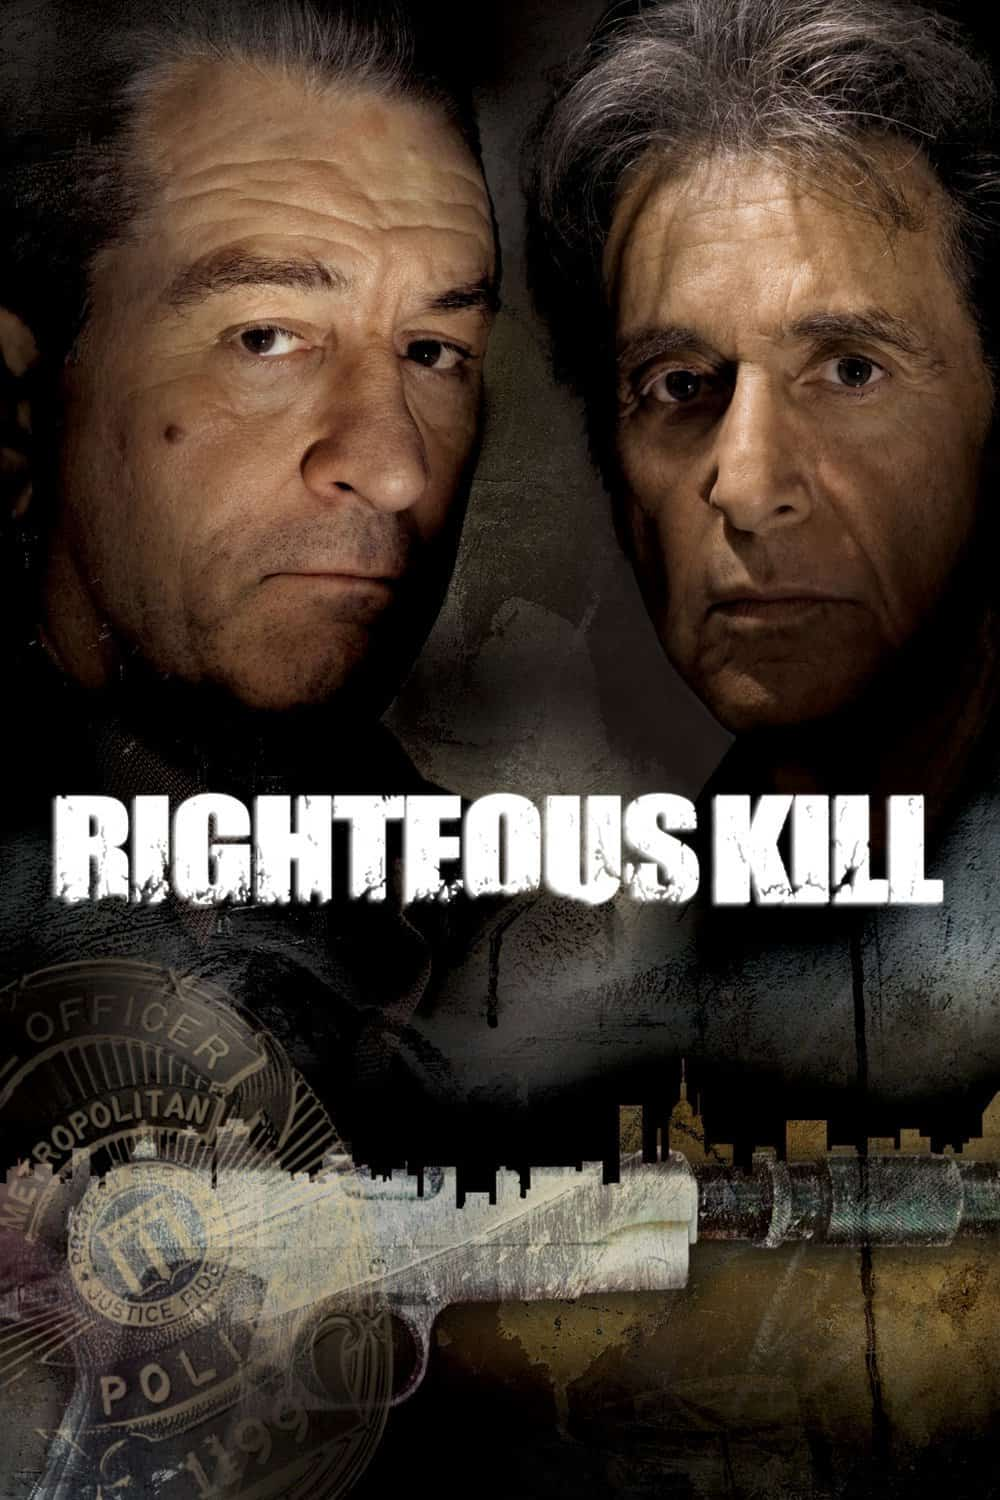 Righteous Kill, 2008